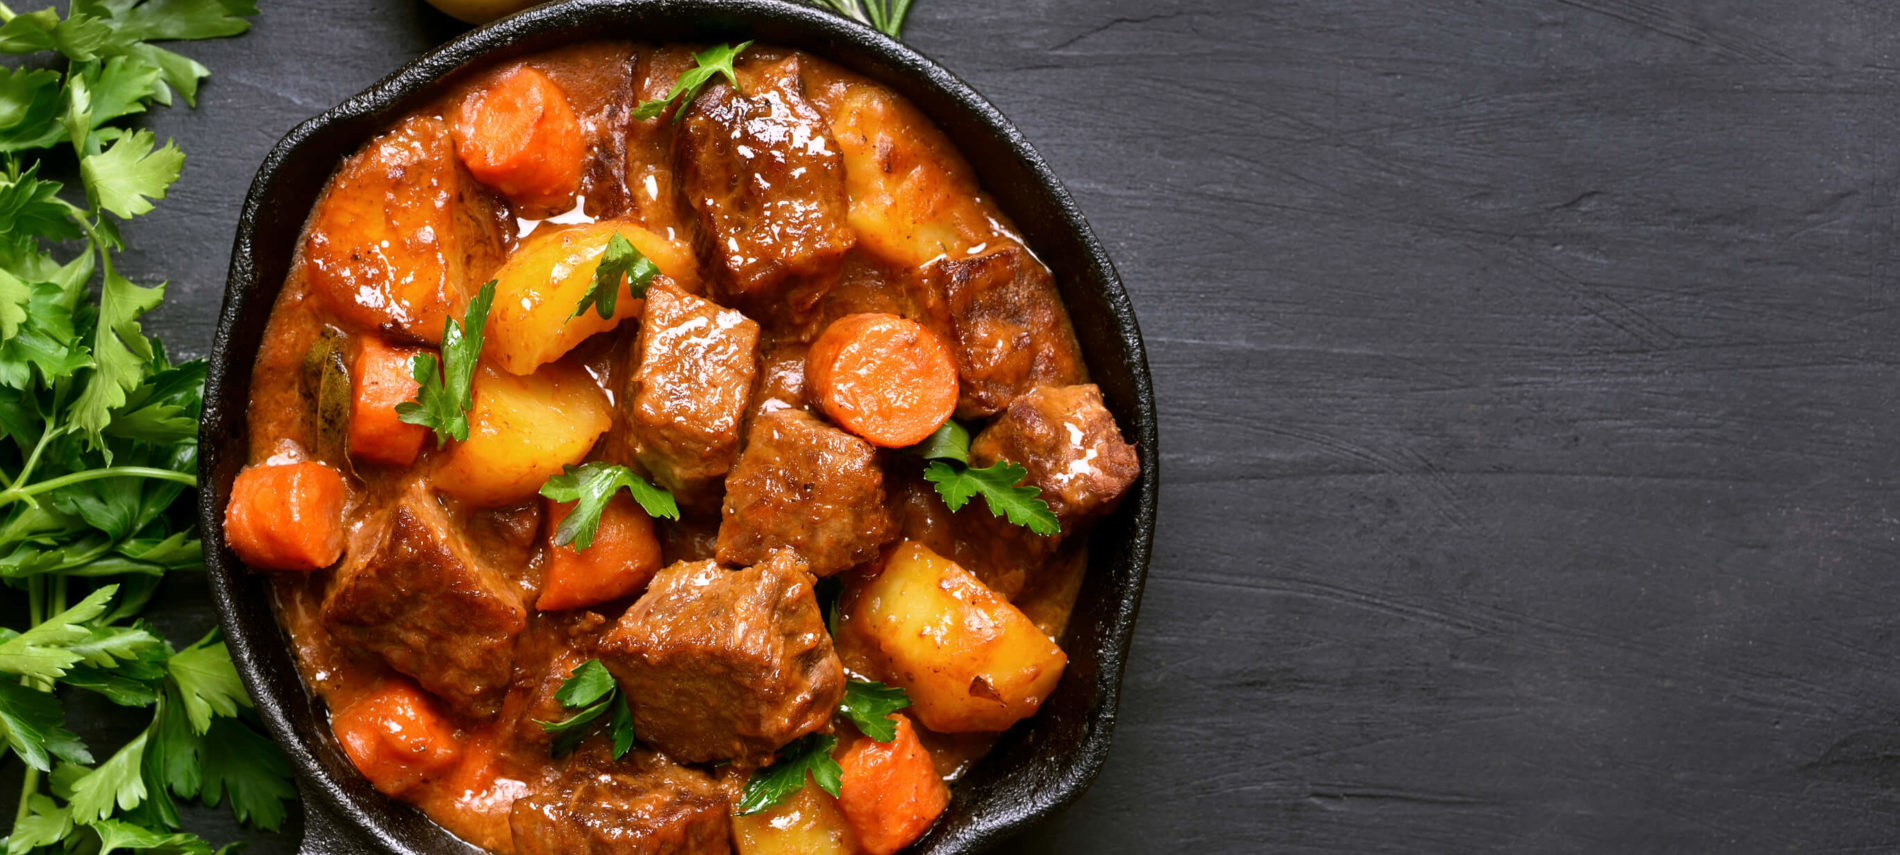 A cast iron pan with beef stew and vetetables